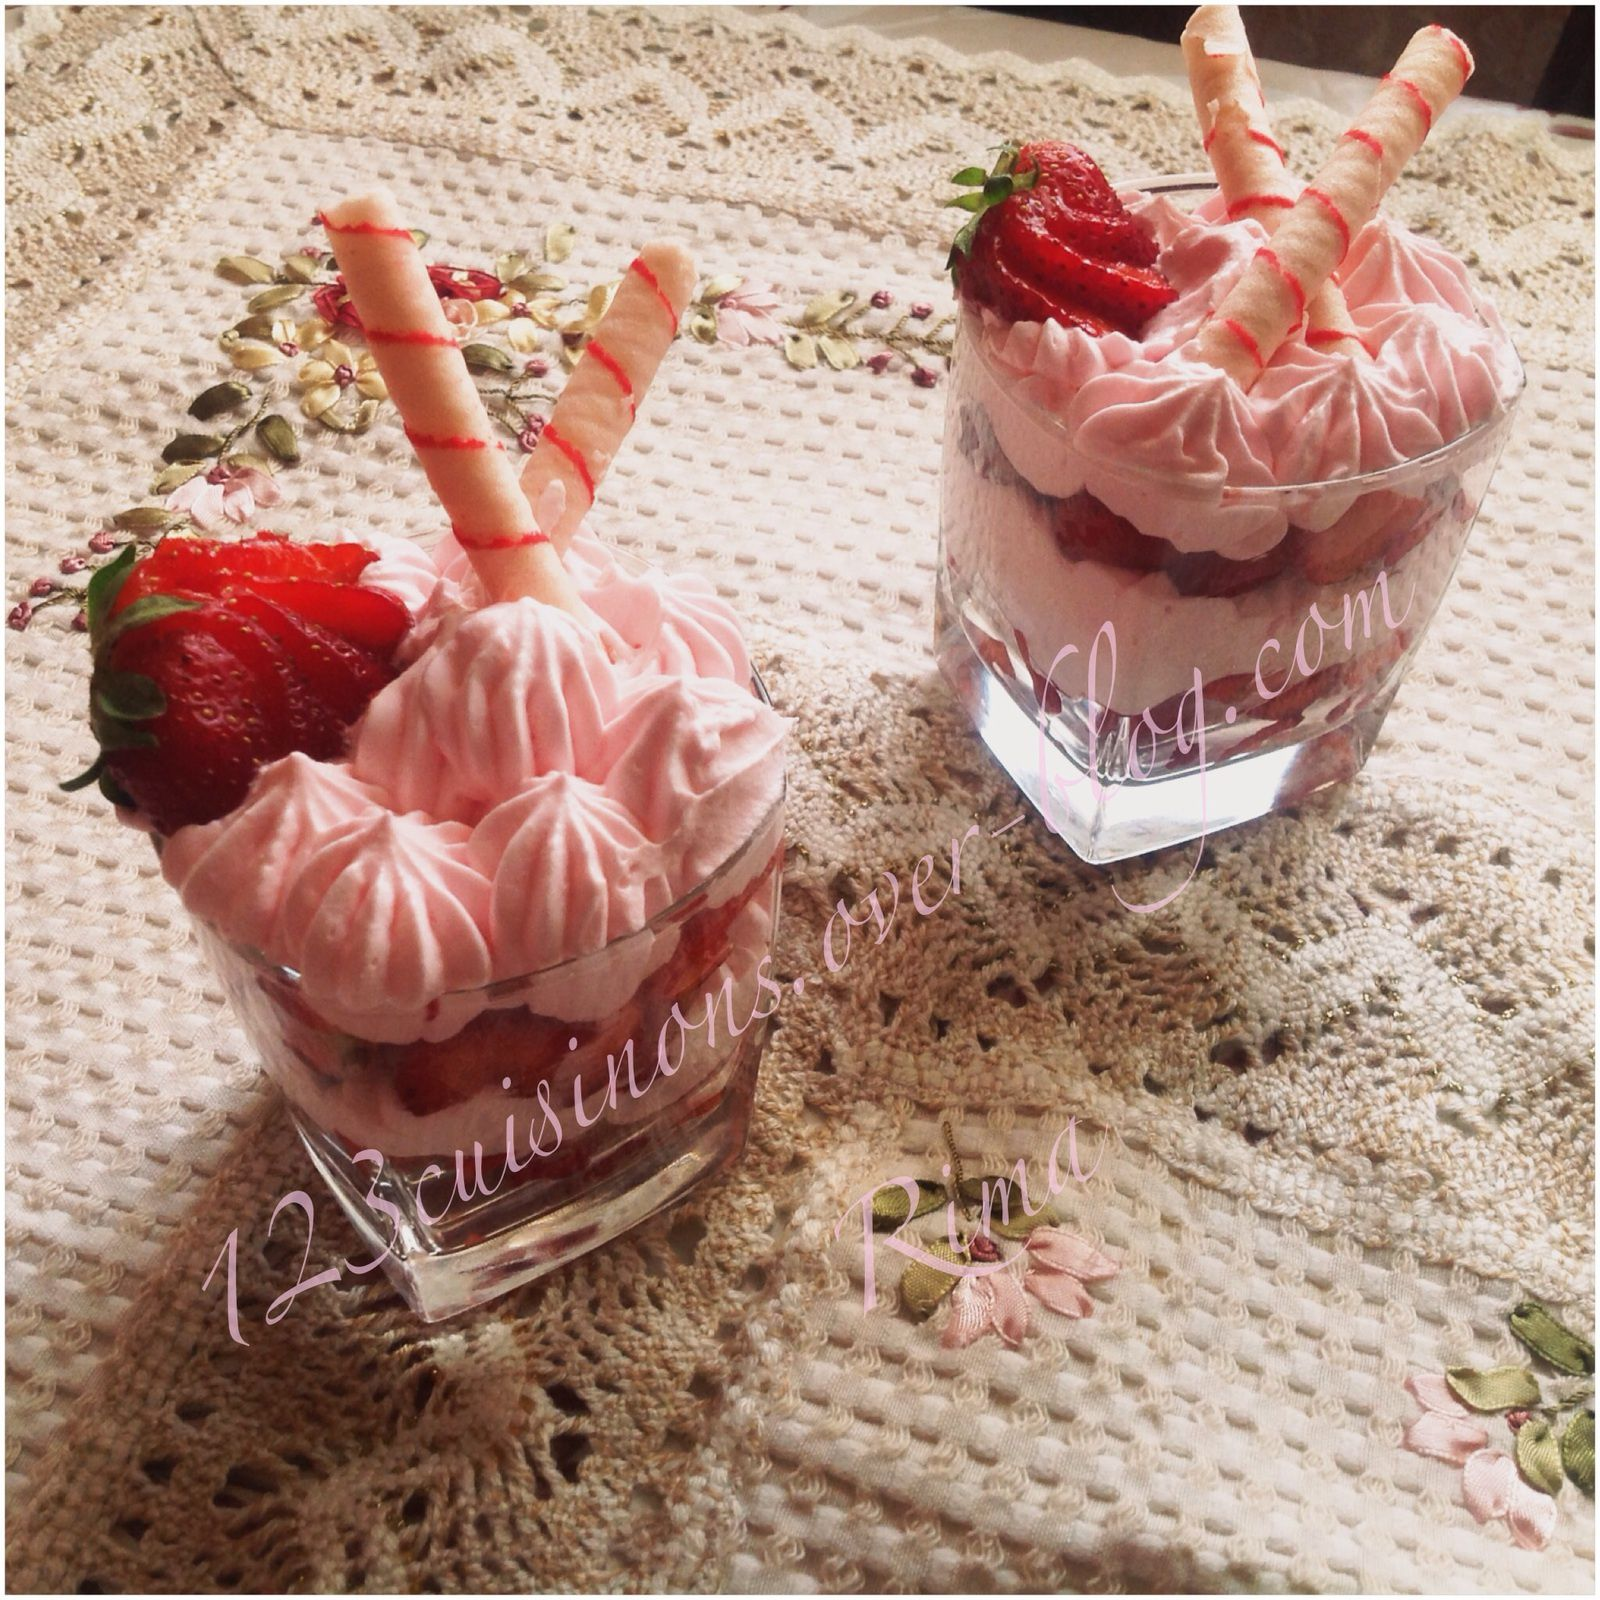 Verrines de fraises chantilly /Grenadine